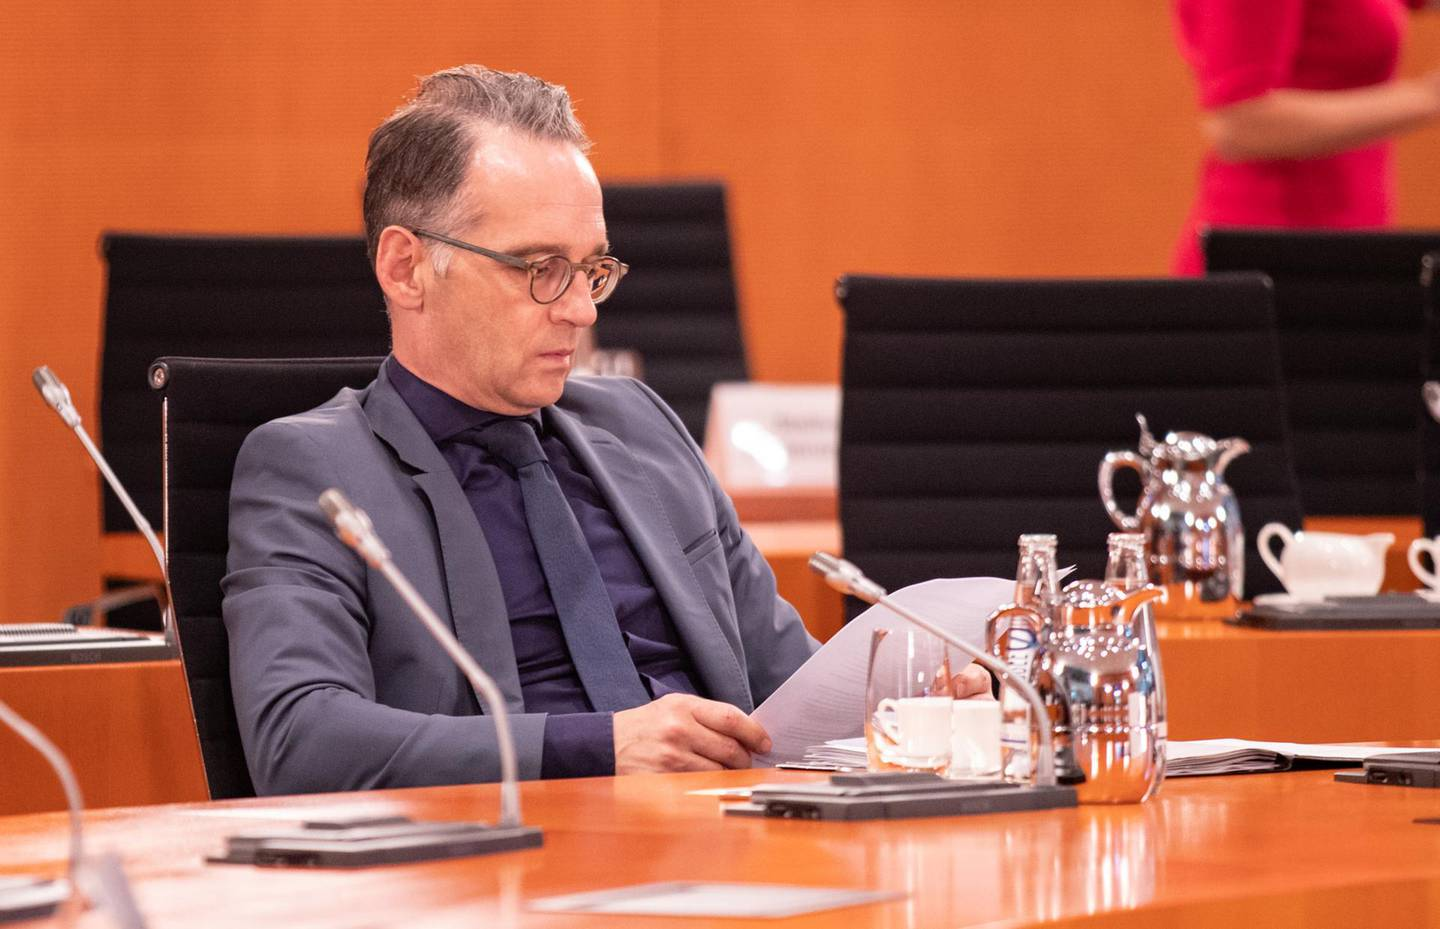 BERLIN, GERMANY - SEPTEMBER 16: Federal Minister for Foreign Affairs Heiko Maas (SPD) during the weekly Government Cabinet Meeting on September 16, 2020 in Berlin, Germany. (Photo by Andreas Gora - Pool/Getty Images)